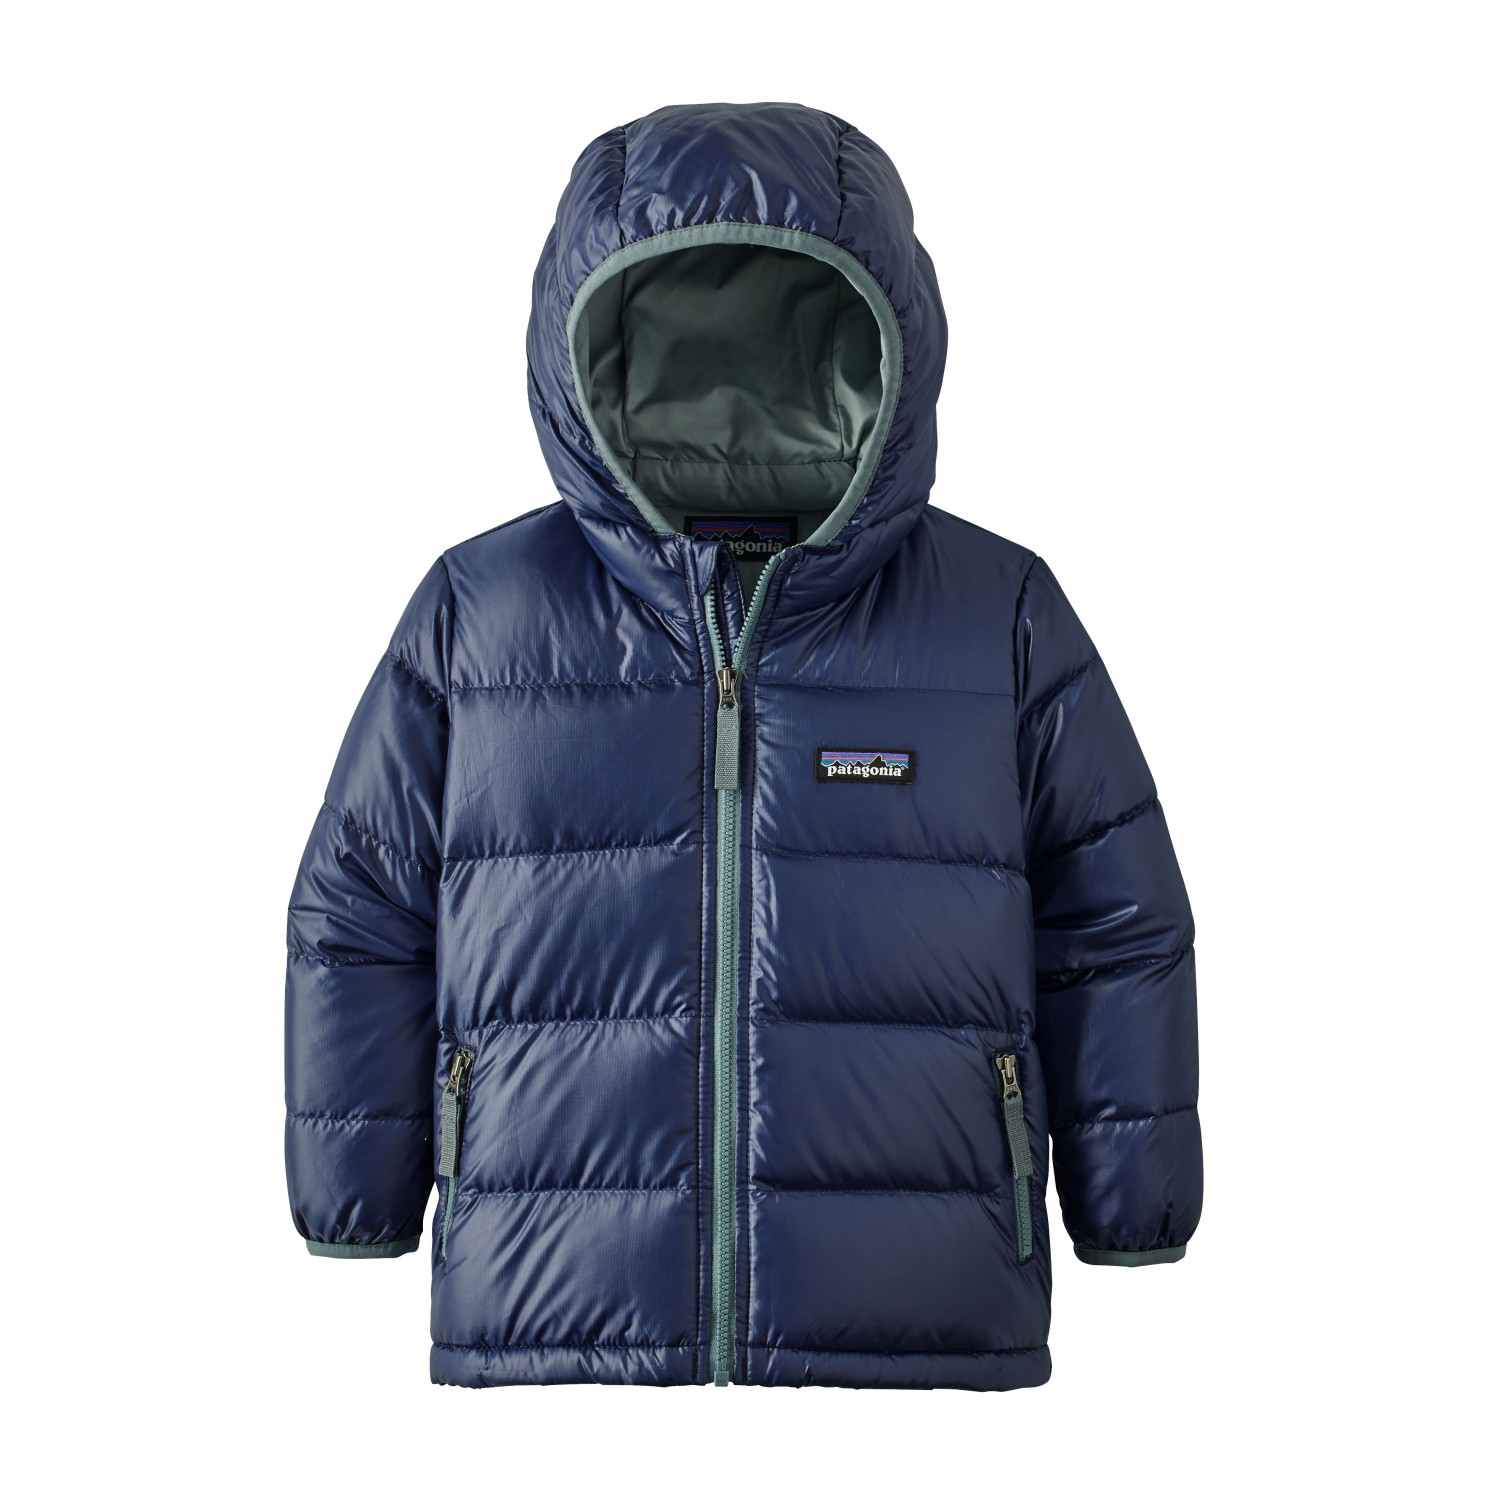 c65a50c51 Patagonia Baby Highloft Down Sweater Hoody - Down Jacket Kids